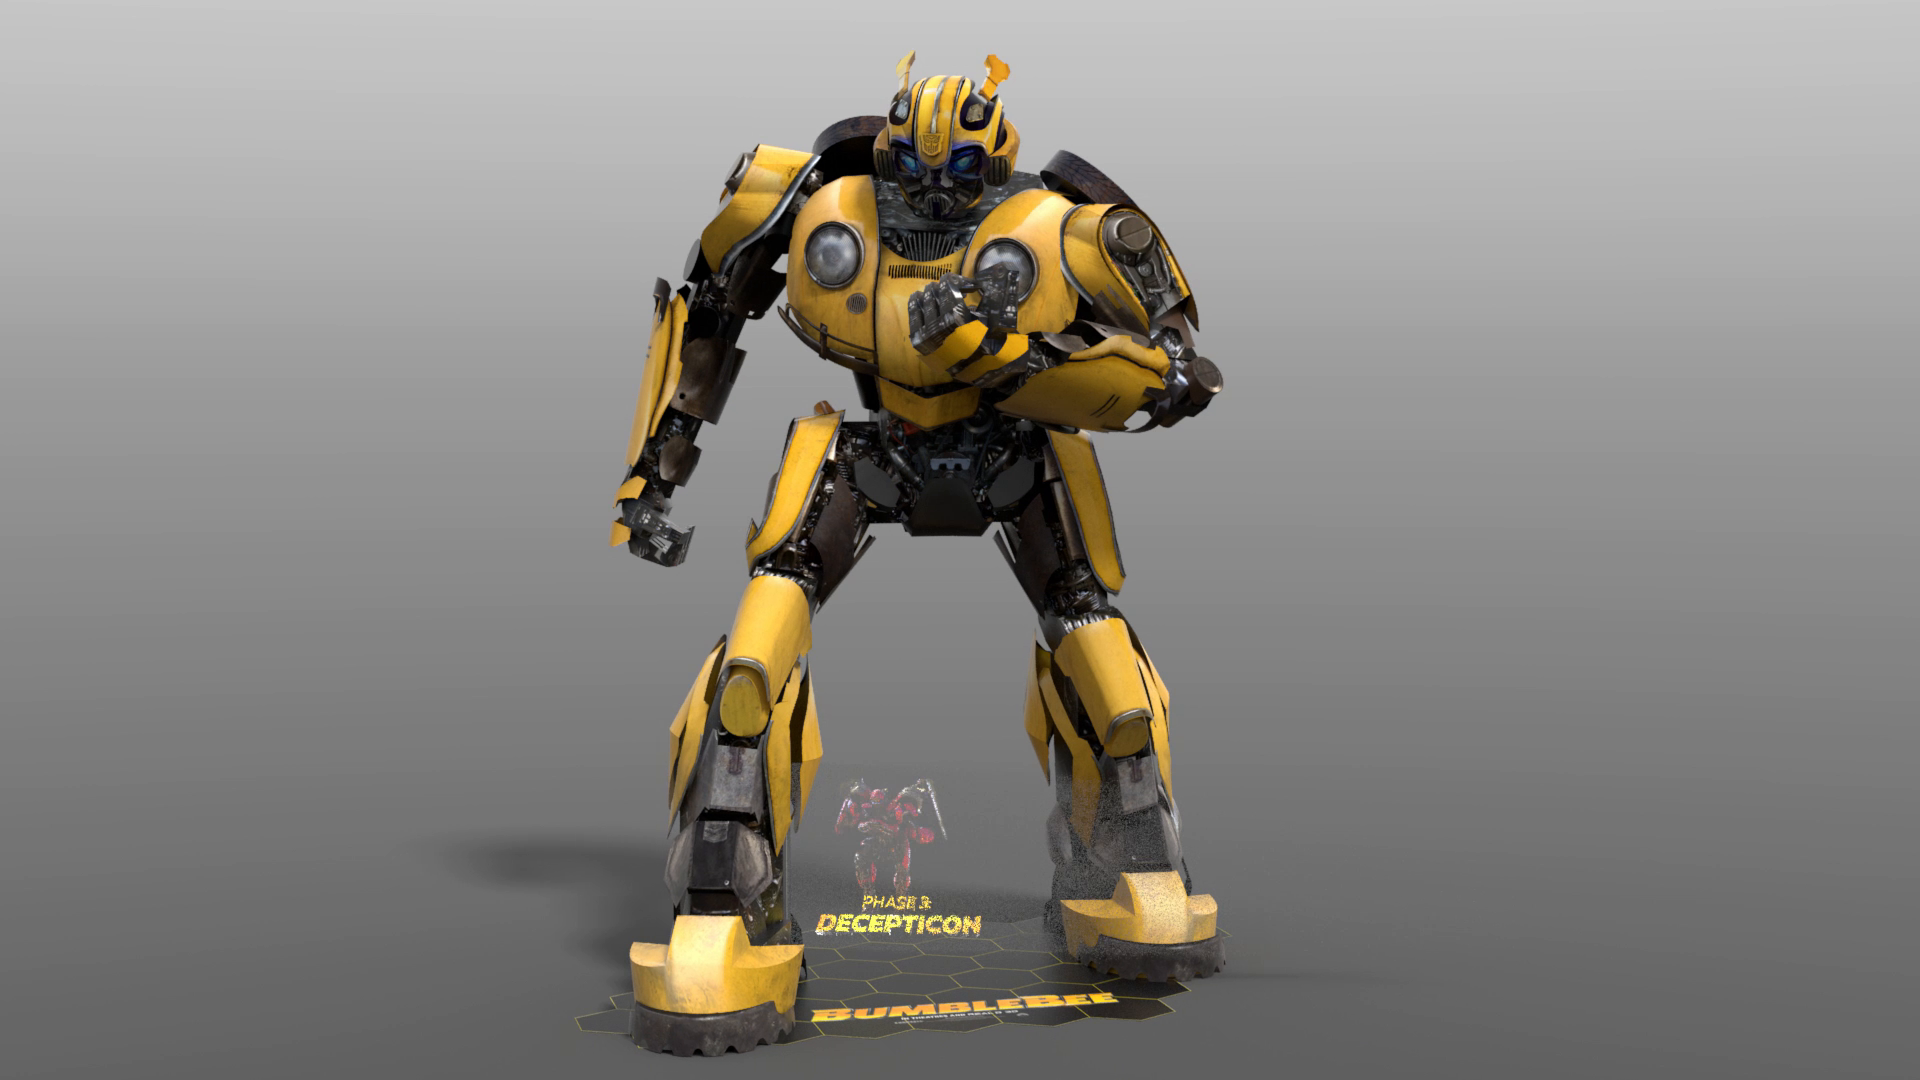 Thumbnail for Bumblebee 3D Character Standee with Custom AV Special Effects